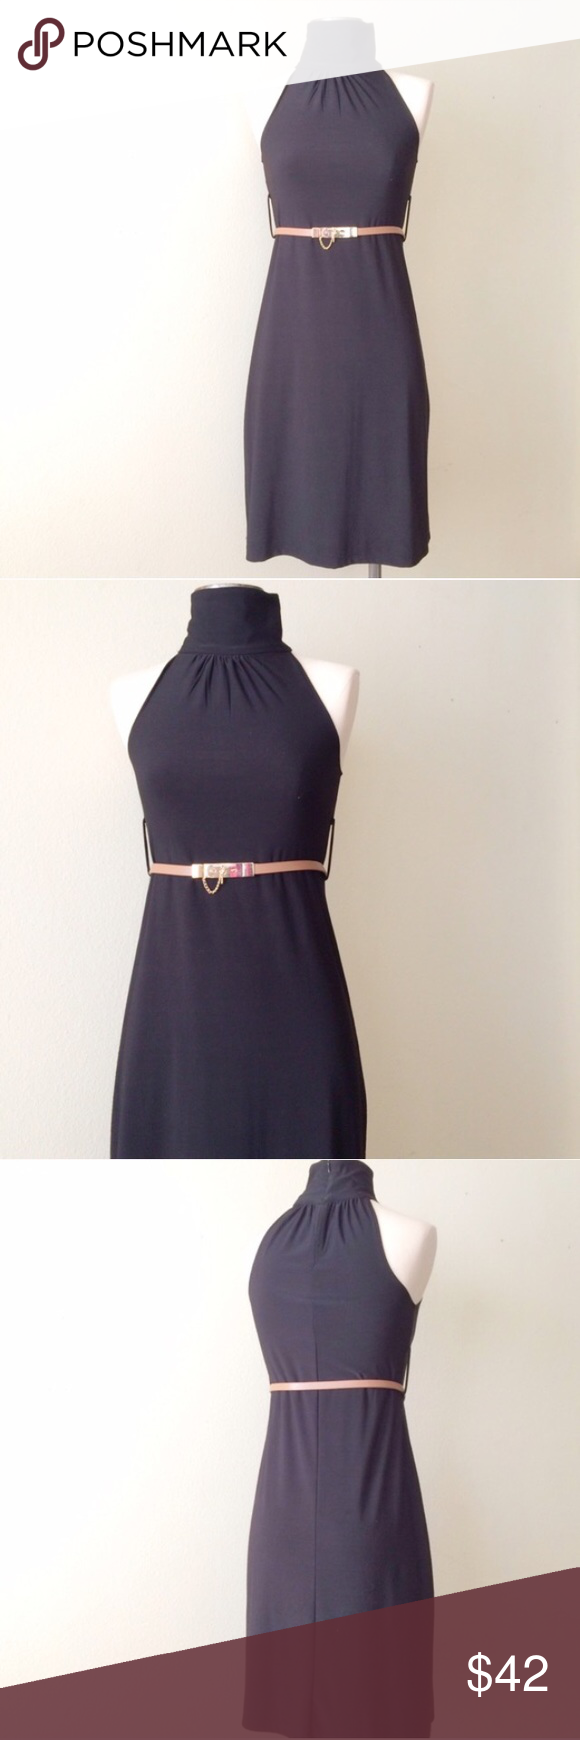 ❗FINAL PRICE️❗️Sleeveless Turtleneck Dress ❗️END OF SUMMER CLEARANCE❗️EUC. This could be your new LBD. Complete with loops for a belt, you could go skinny or wide. Minor piling on back (pictured). 90% polyester | 6% spandex. Brand: Forever 21. Listed for exposure. *belt not included* Reformation Dresses